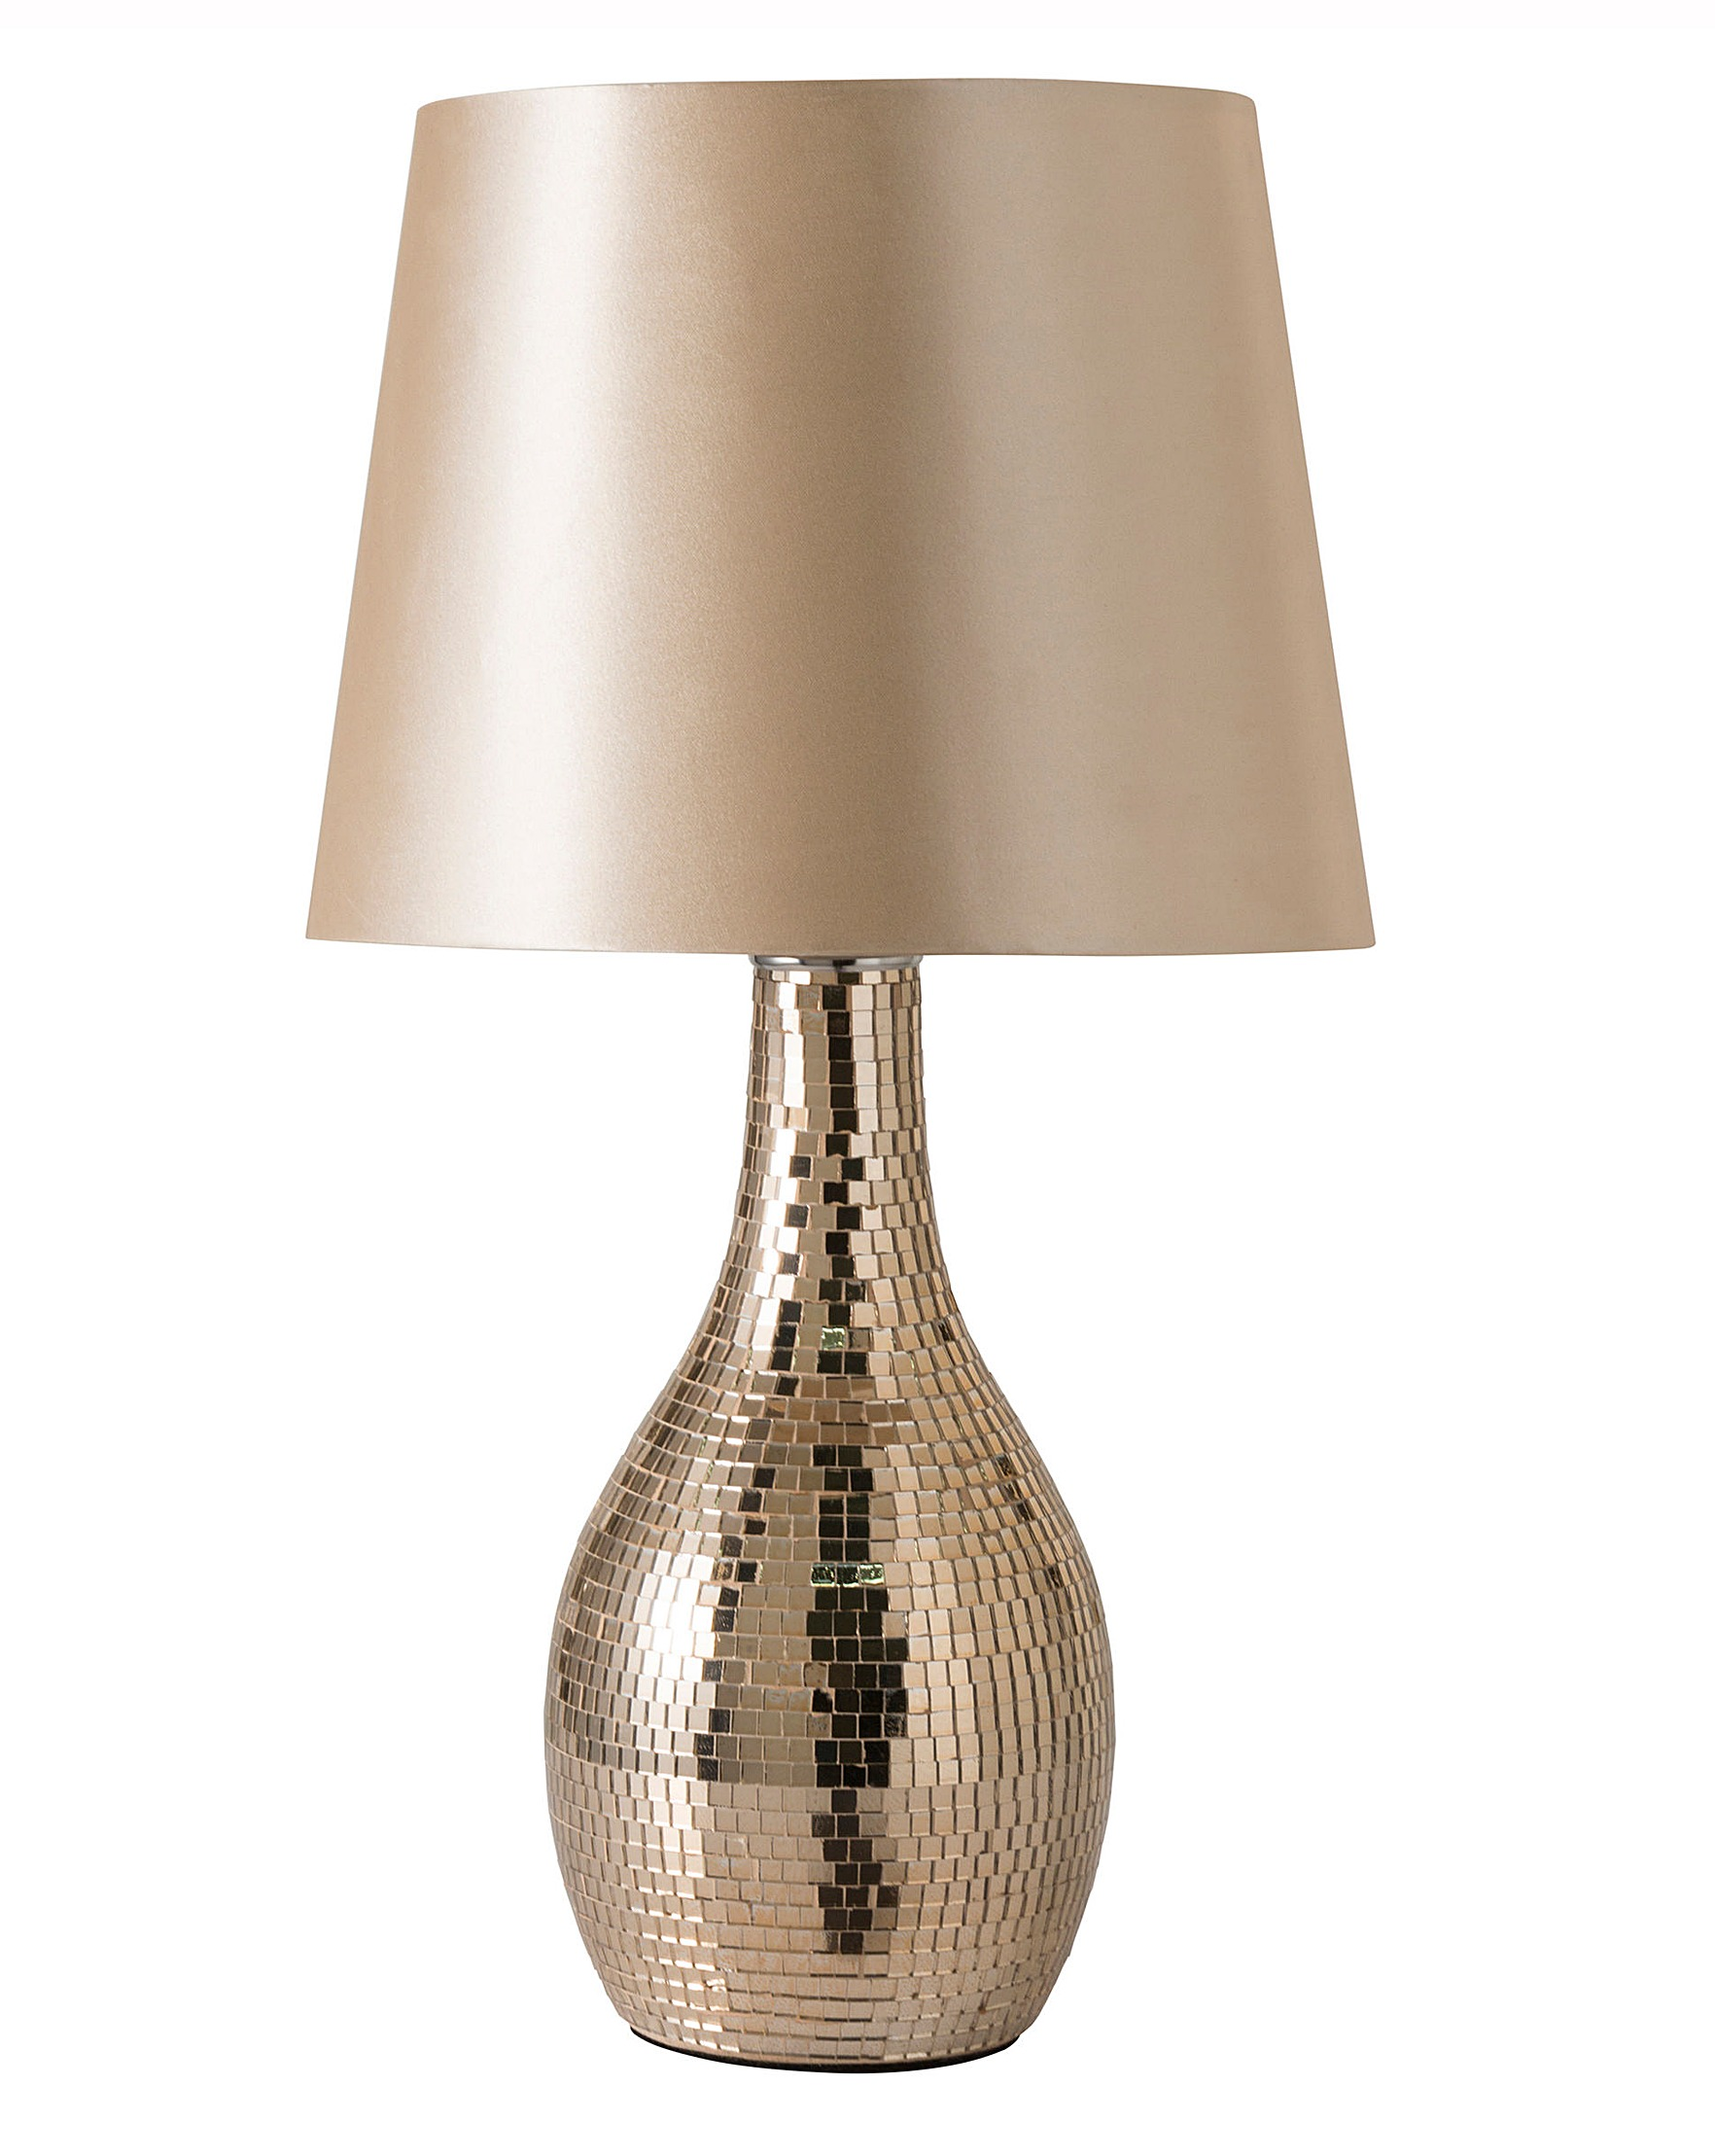 in a mosaic champagne floor lamps homebase copper table lamp